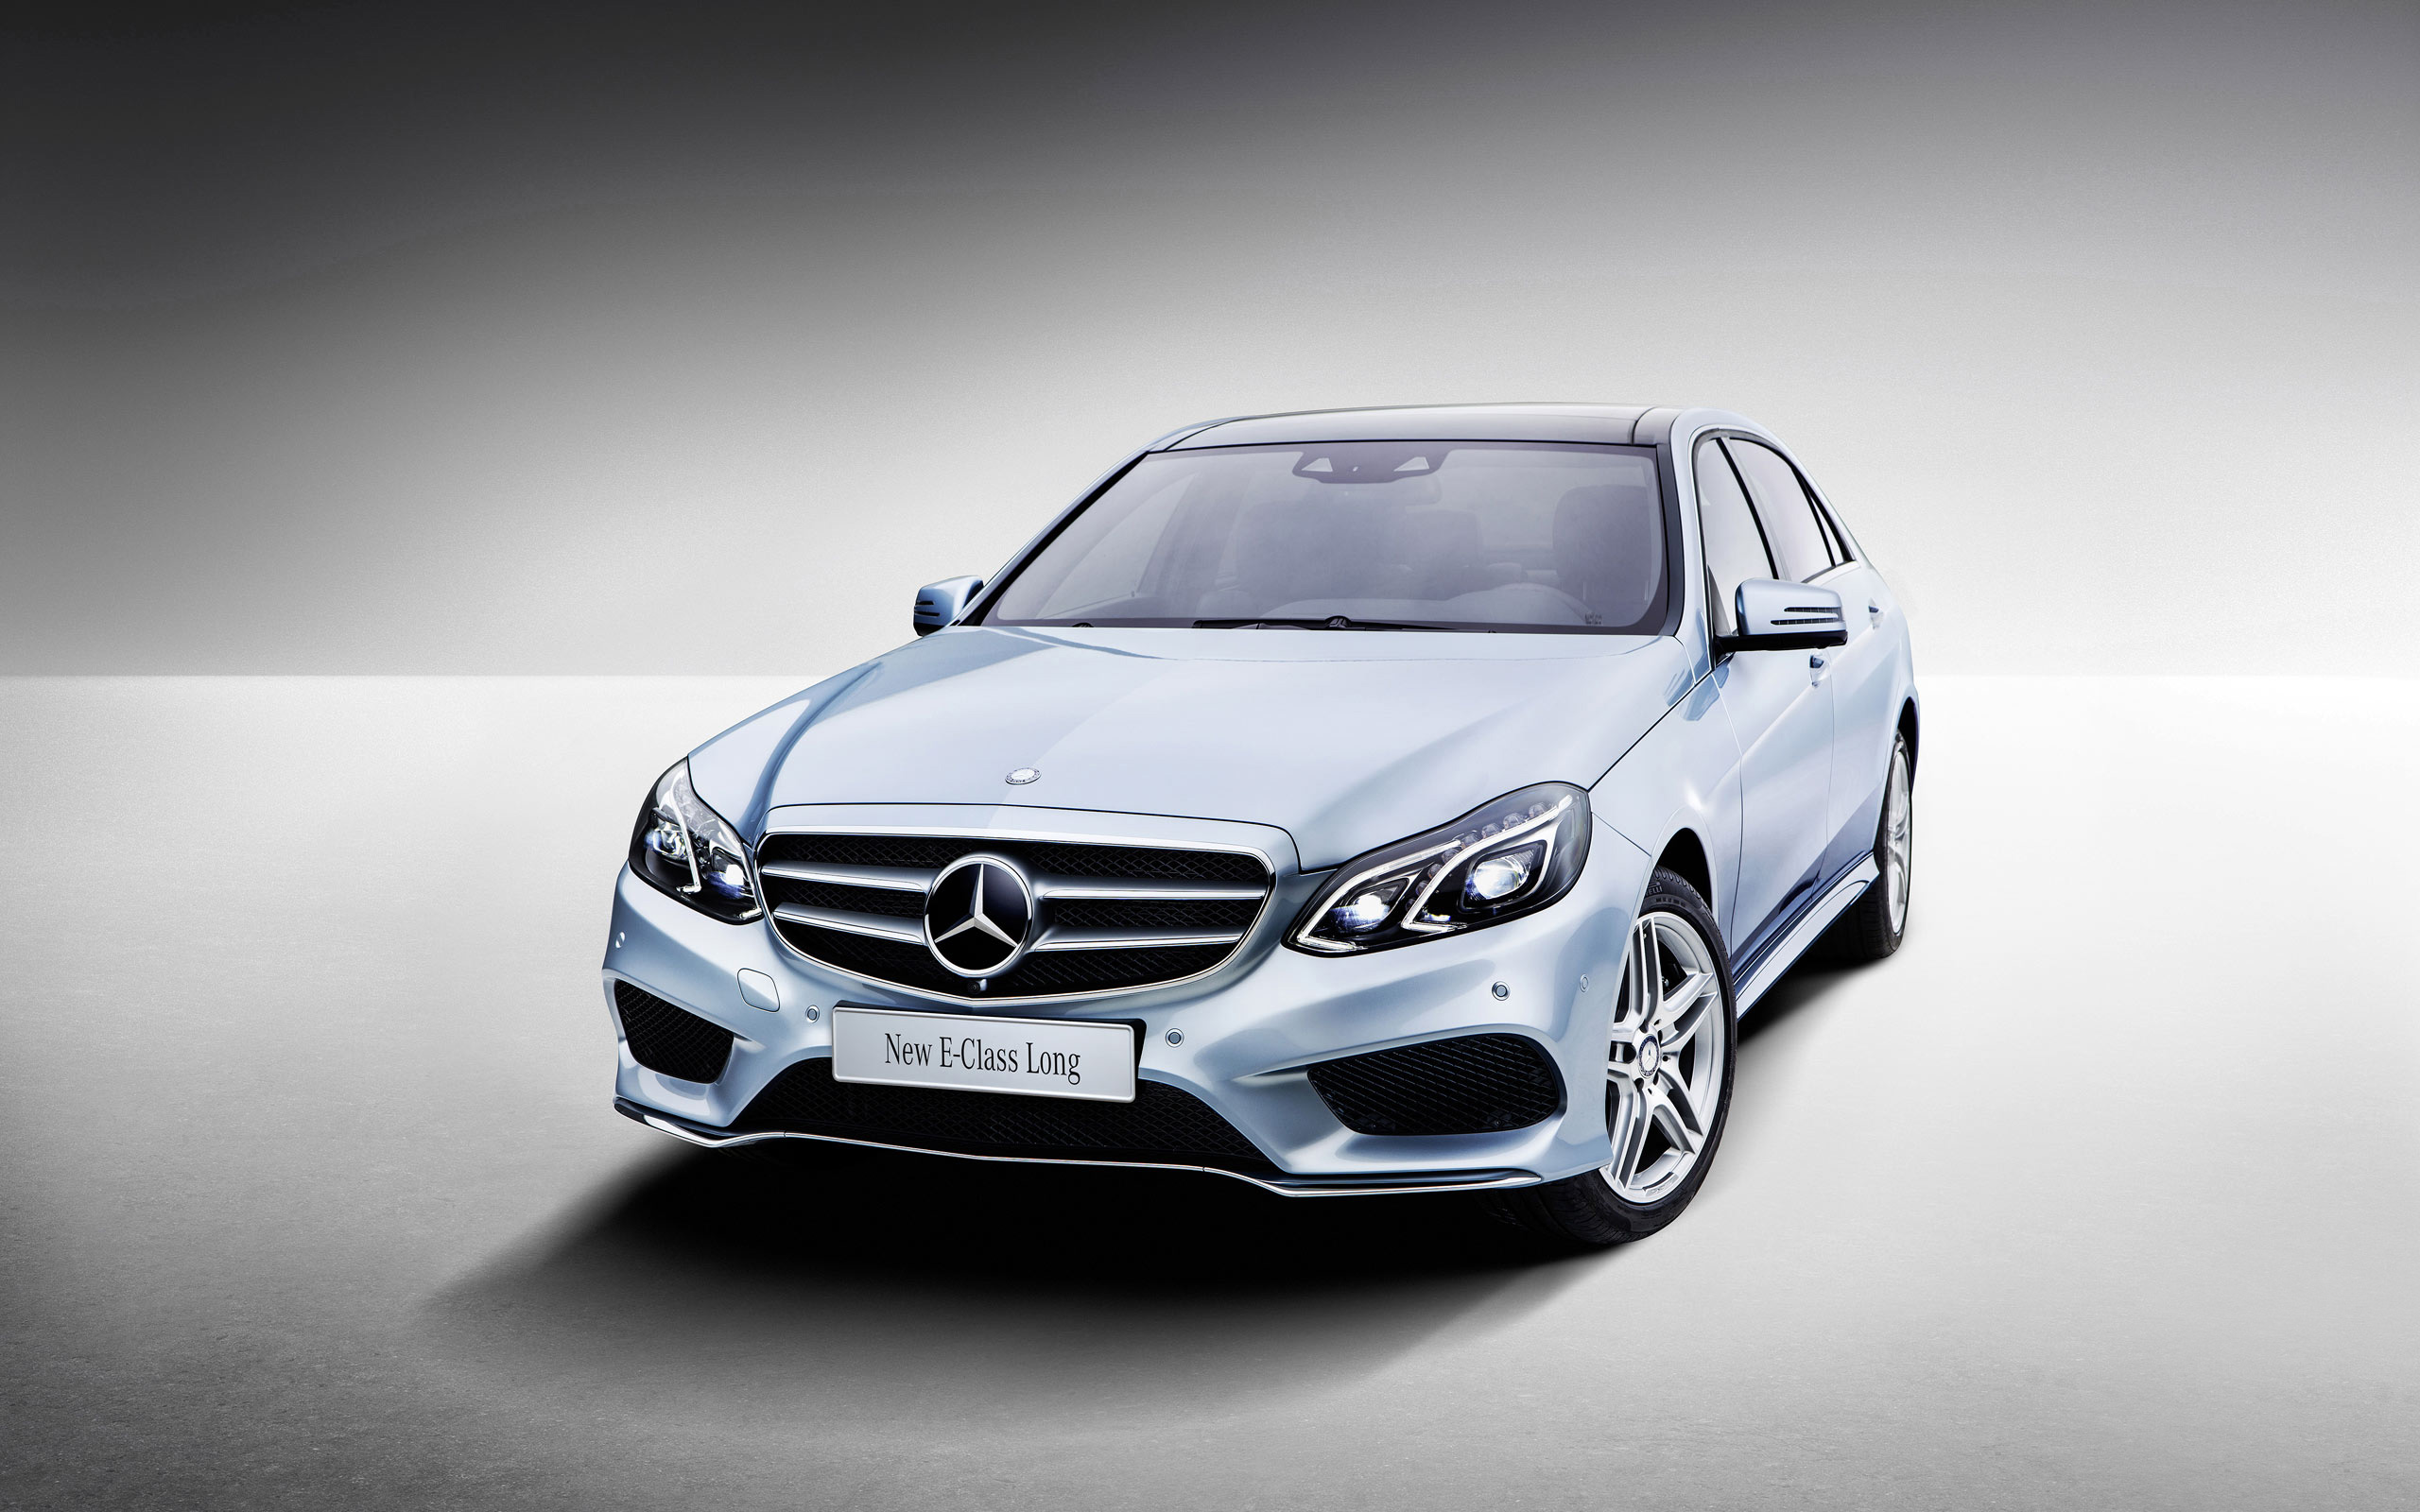 2014 mercedes benz e class l wallpaper hd car wallpapers. Cars Review. Best American Auto & Cars Review